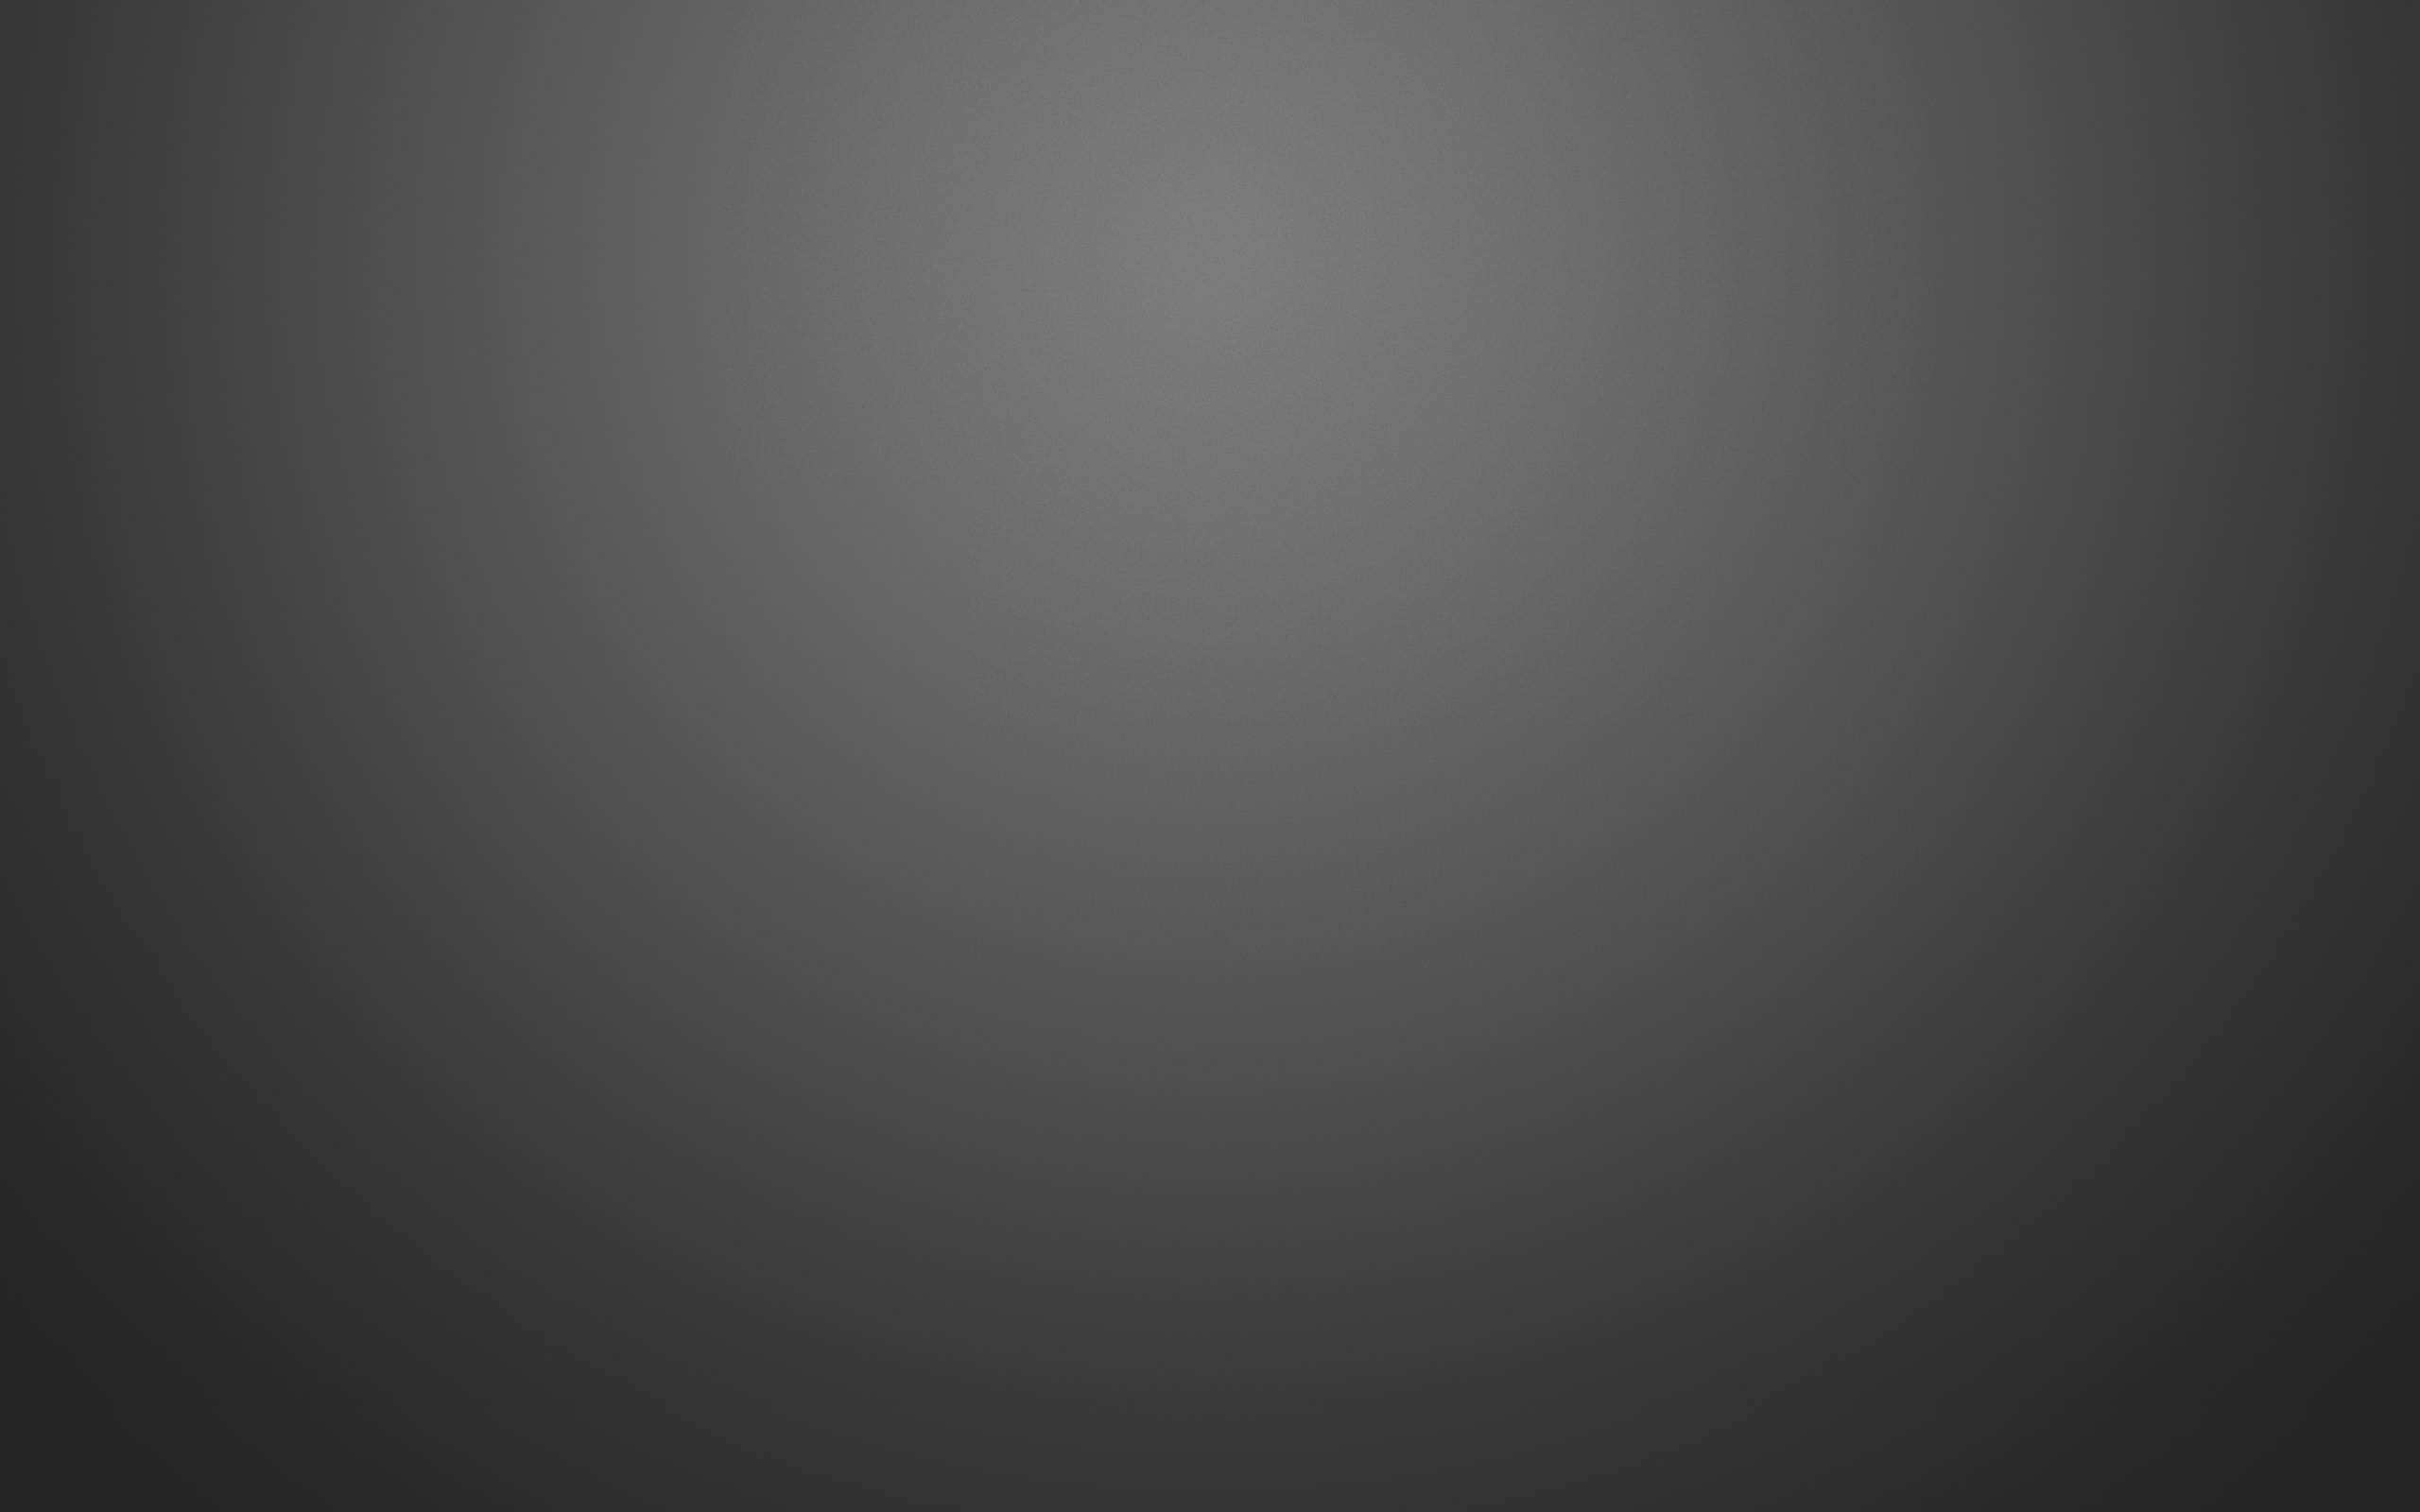 Plain Dark Gray Background